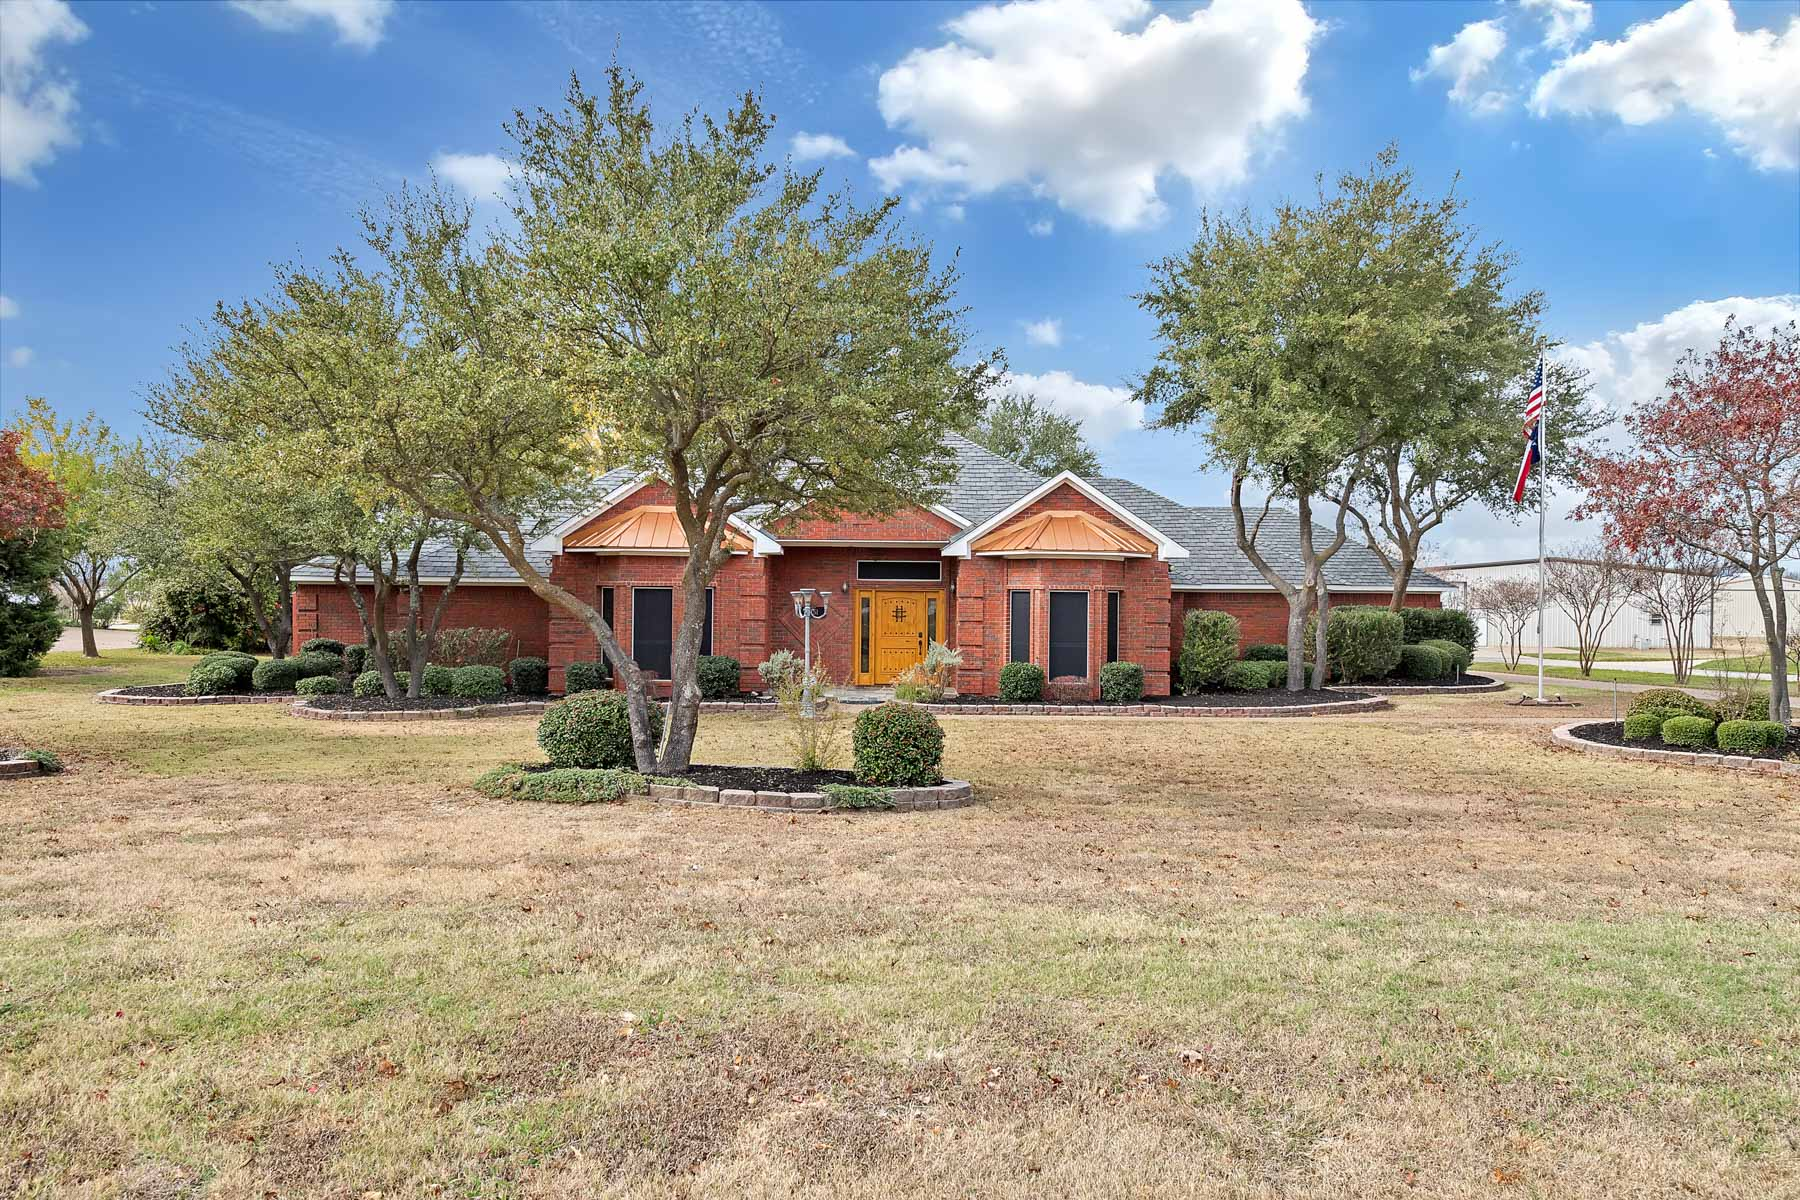 Single Family Home for Sale at 2751 Falcon Way 2751 Falcon Way Midlothian, Texas 76065 United States